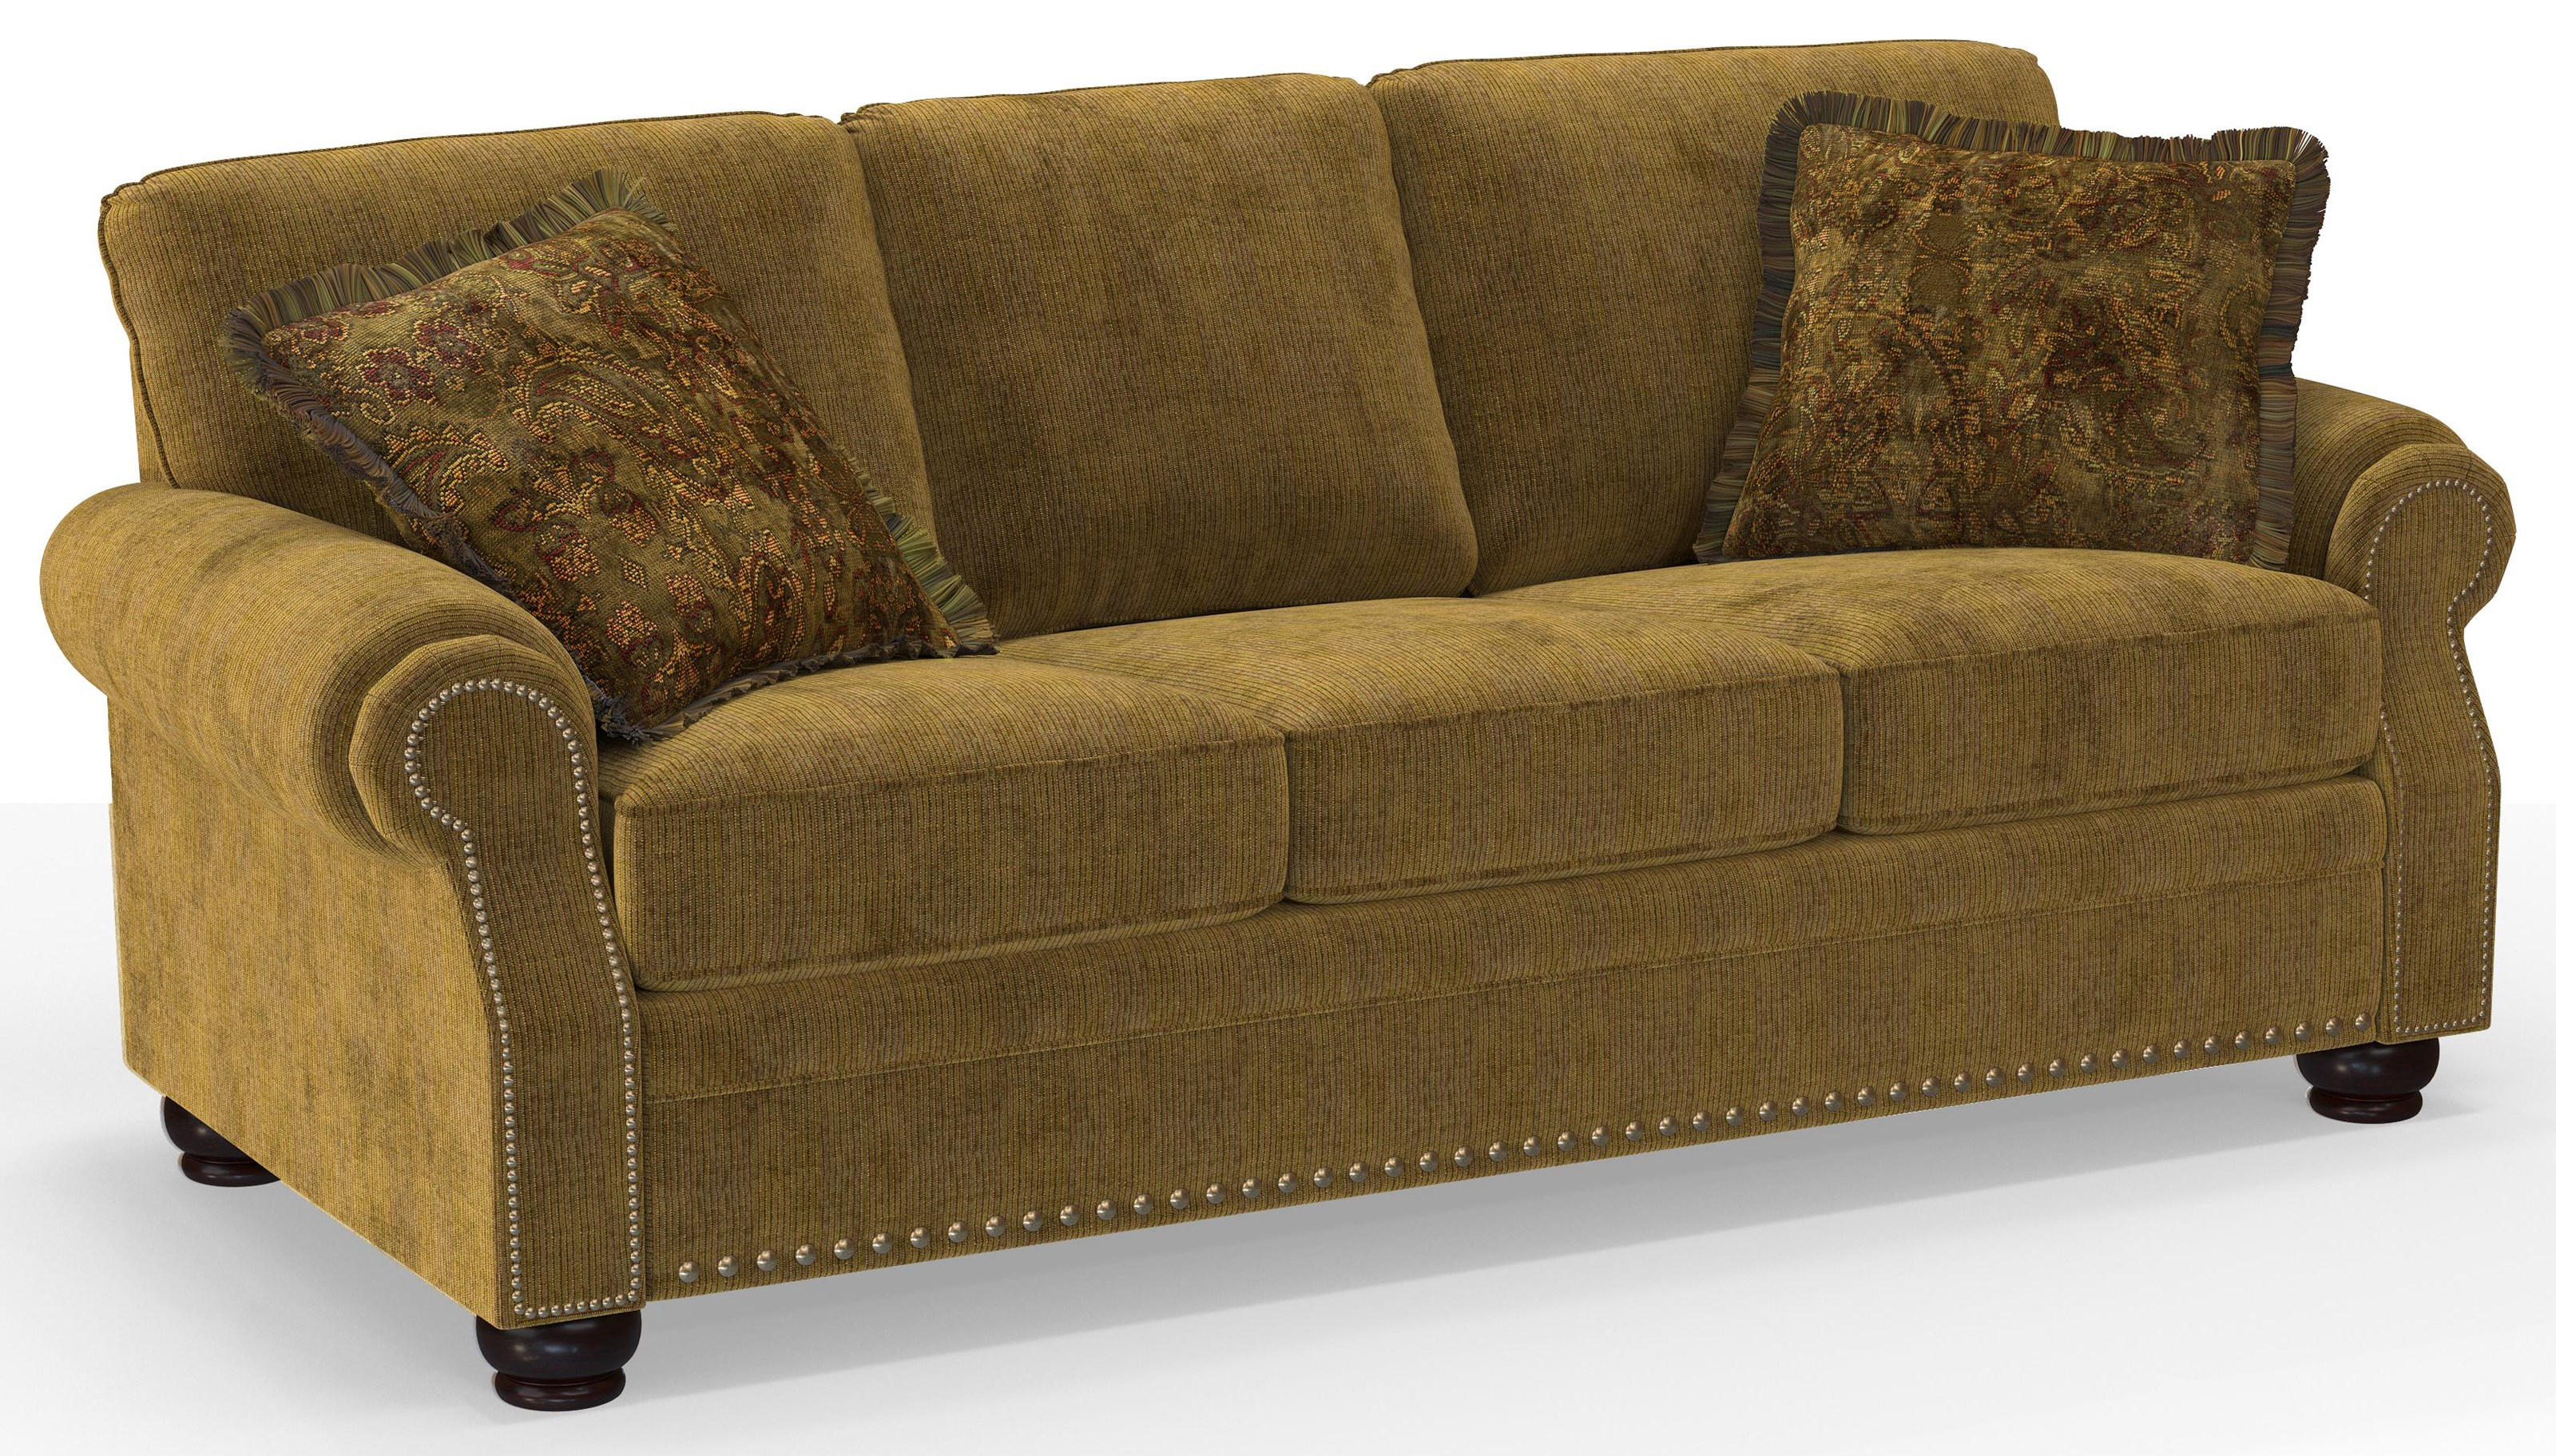 191 3 Over 3 Sofa by Sunset Home at Walker's Furniture